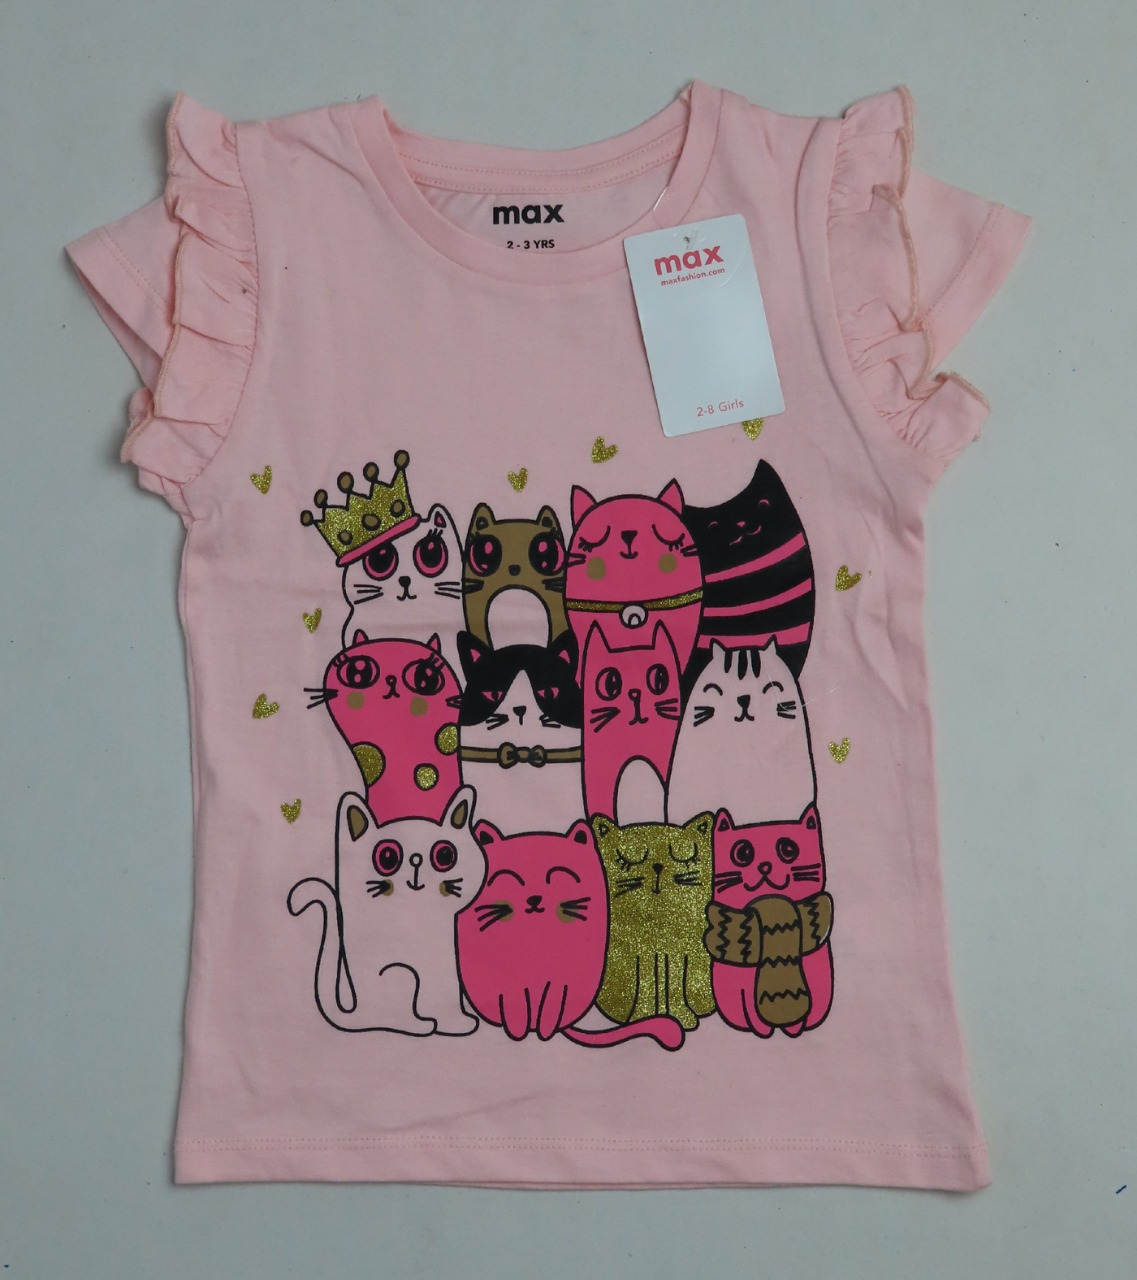 max Girls Glitter Printed T Shirt